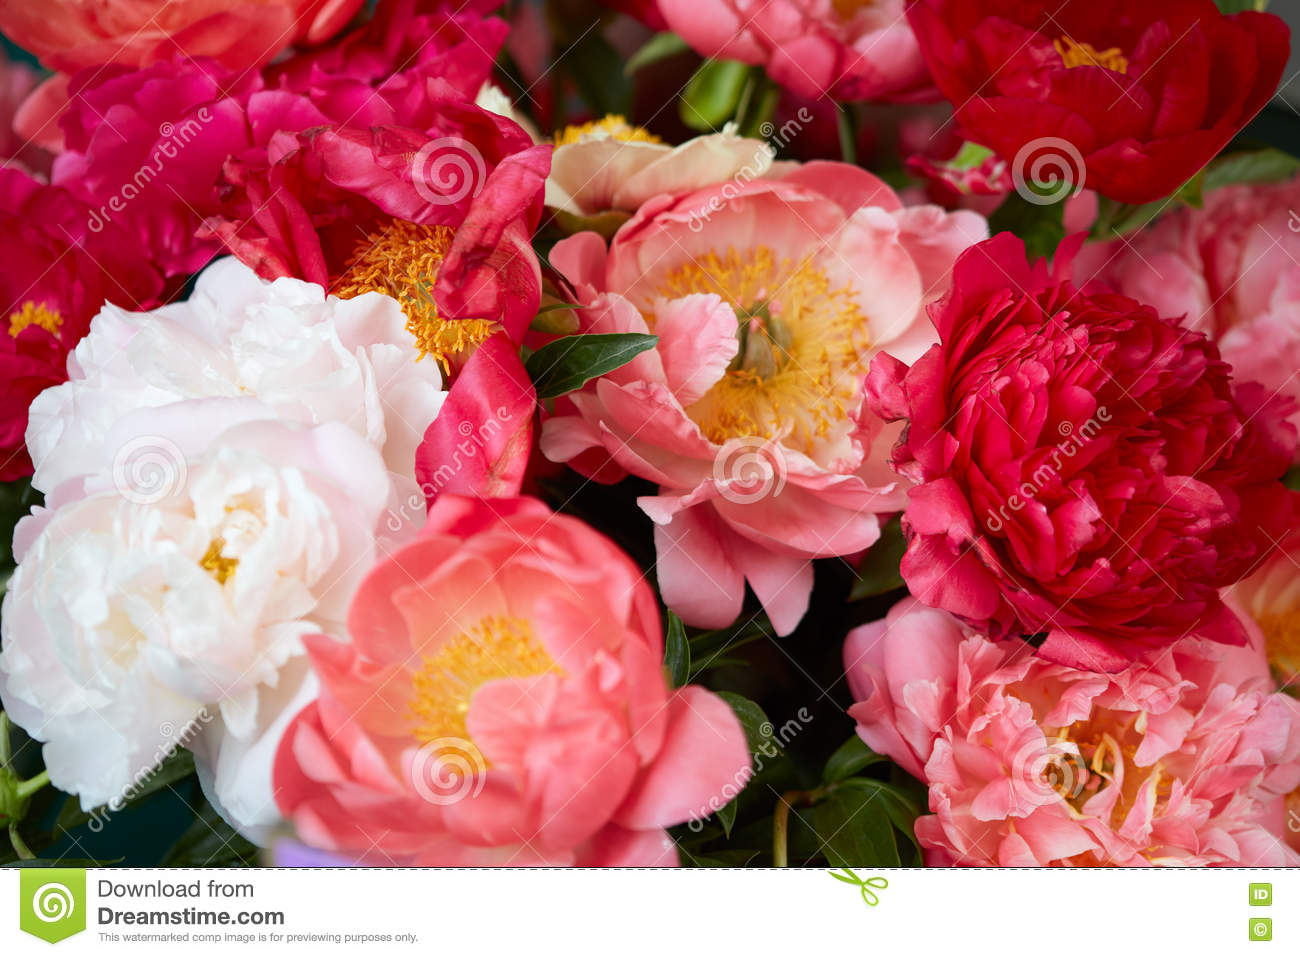 Peony Flowers In Red, Colors Background Stock Image - Image of ...